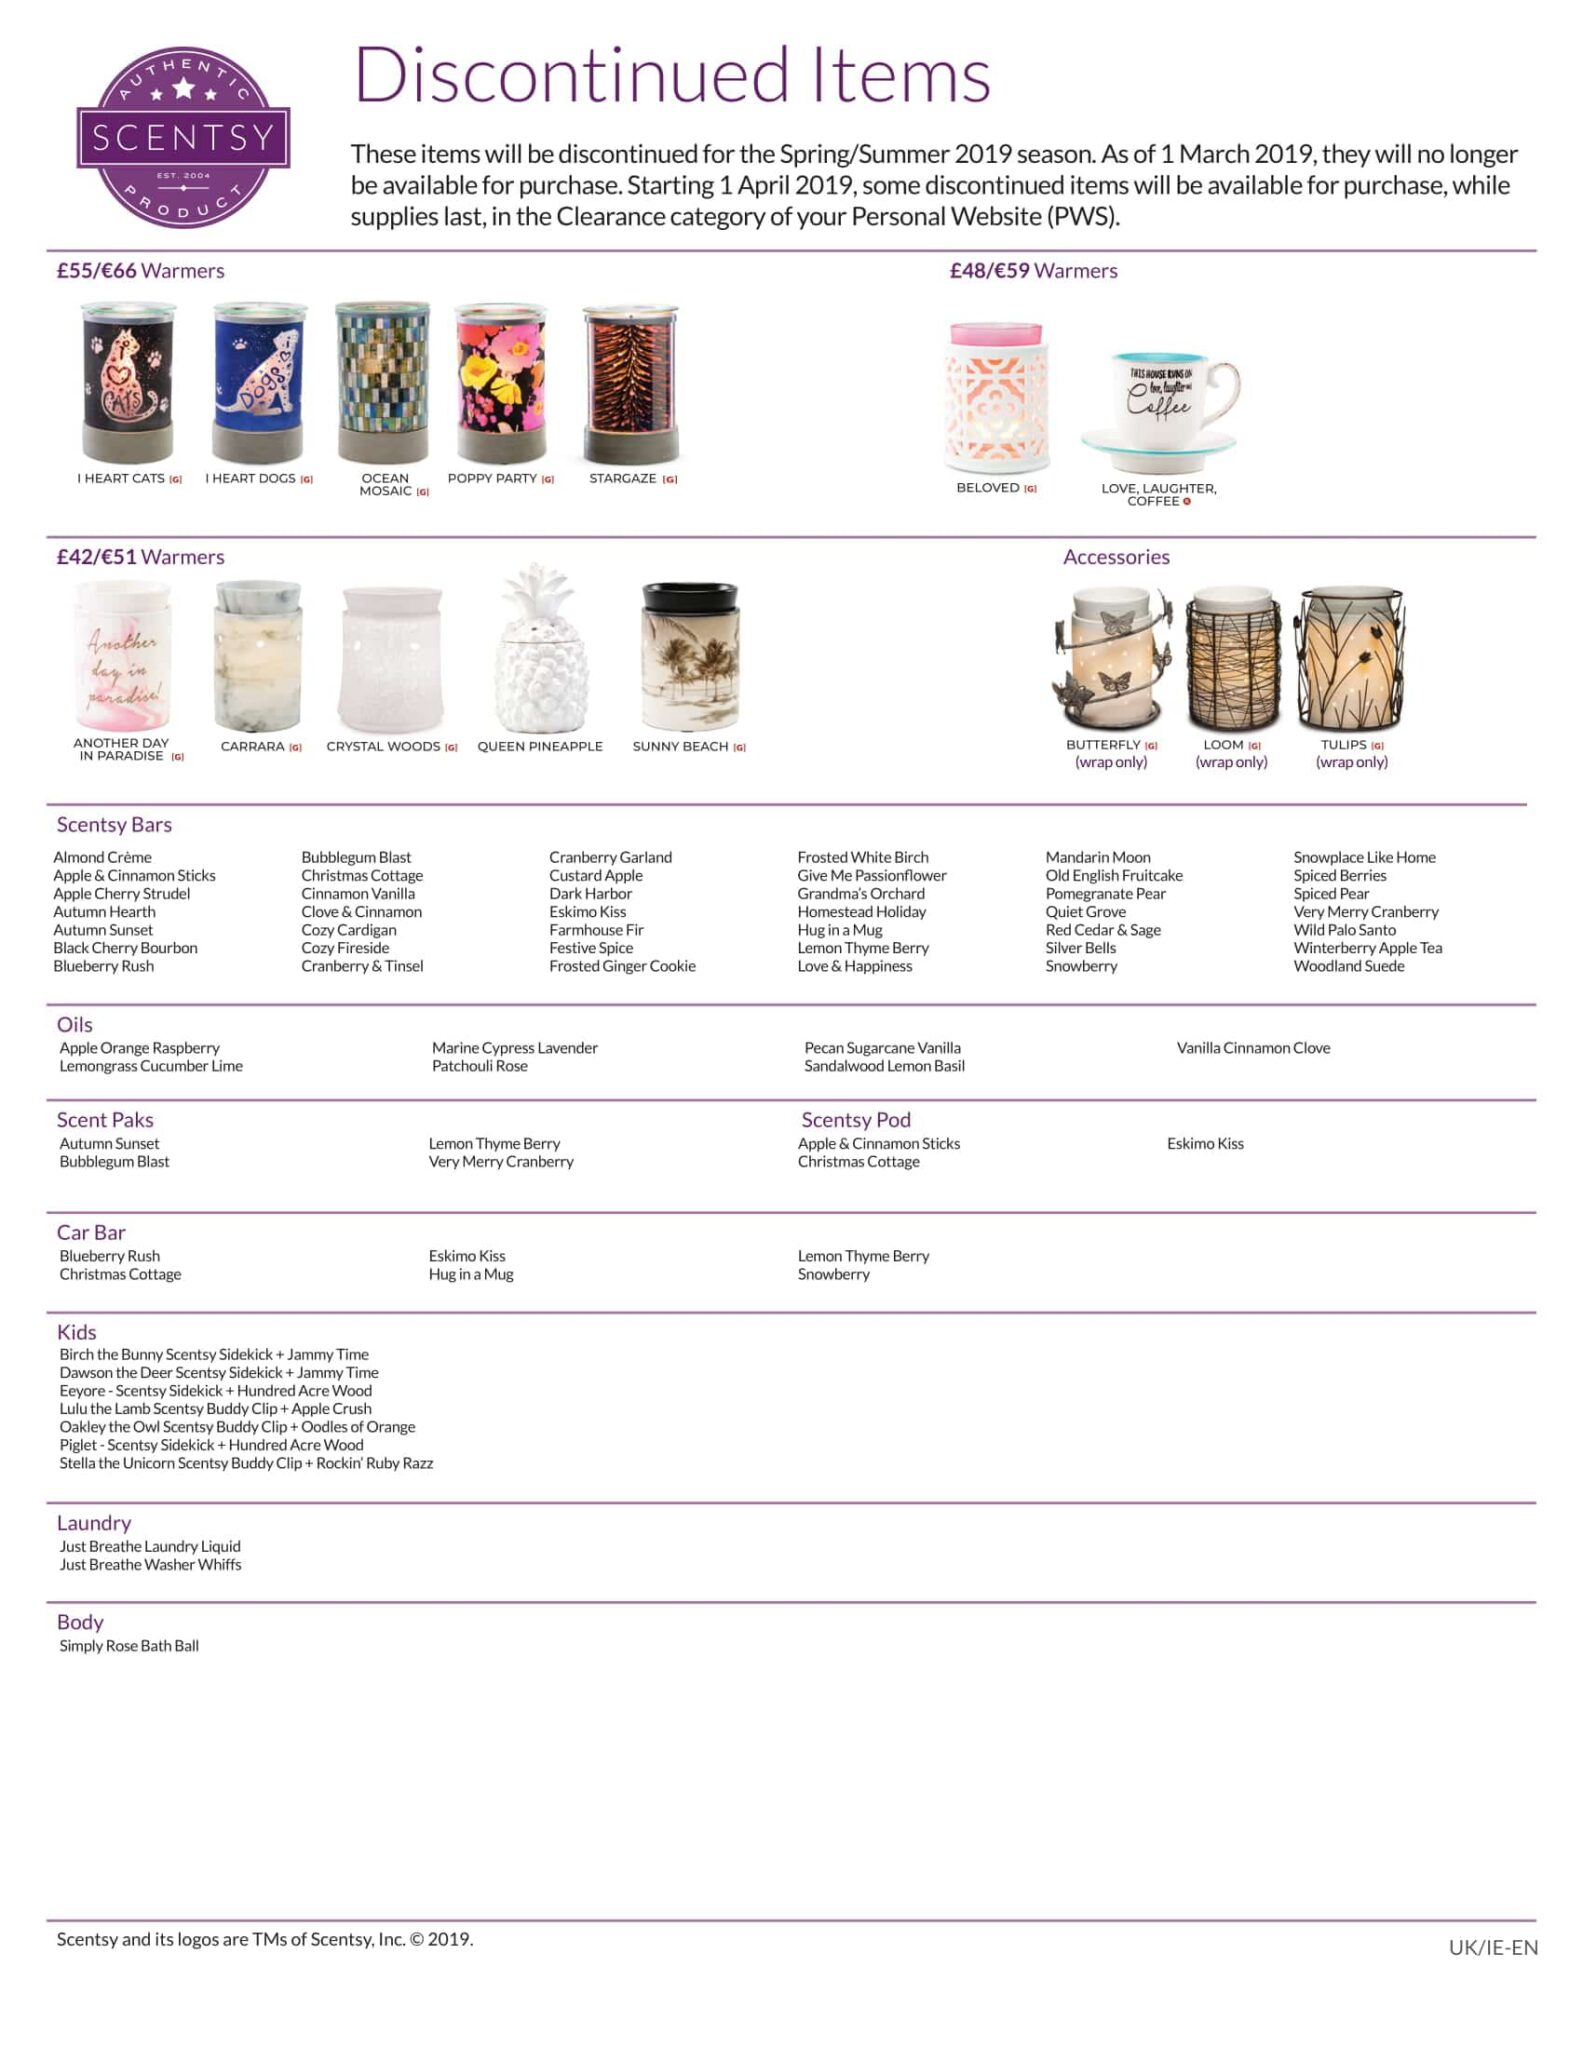 Scentsy Discontinued List 2019